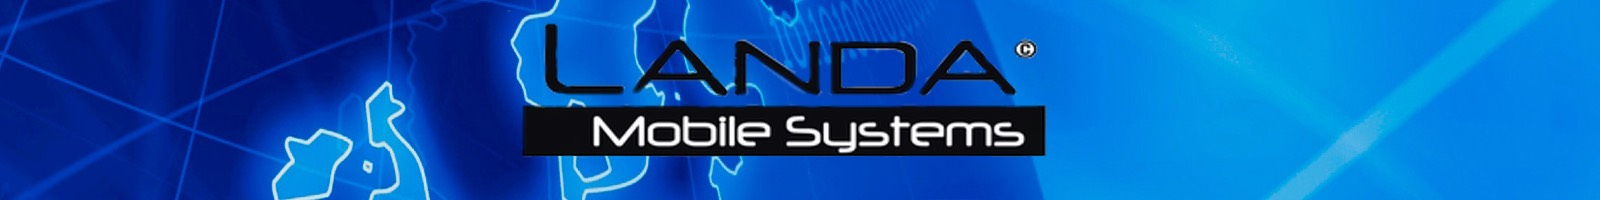 Landa Mobile Systems LLC pagelmslogobanner ACCESSORIES AND OPTIONS